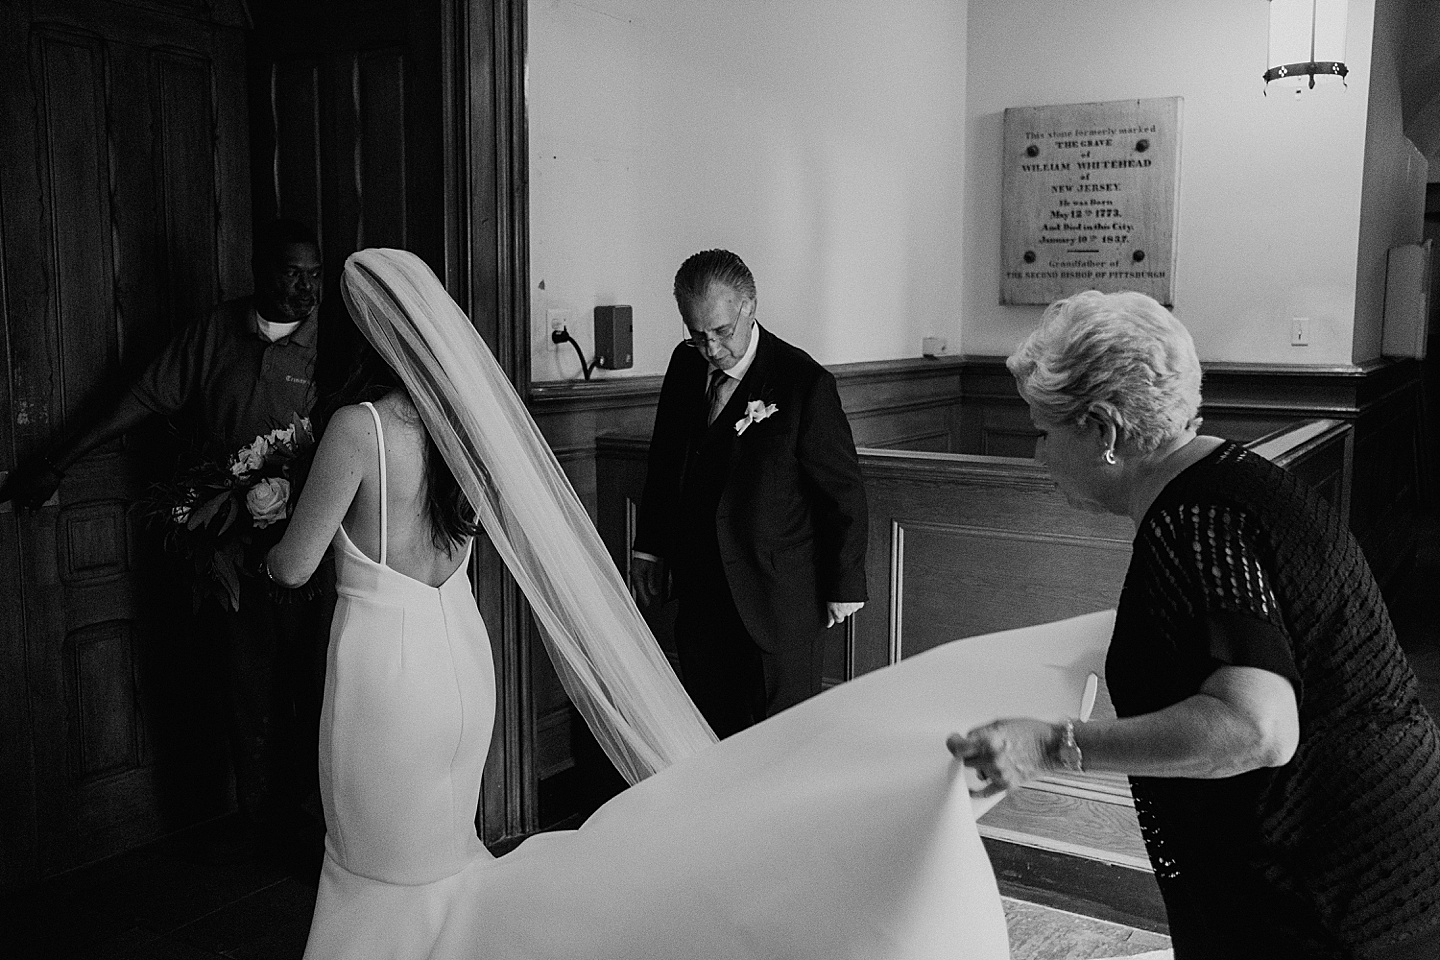 Bride about to walk down the aisle in church wedding